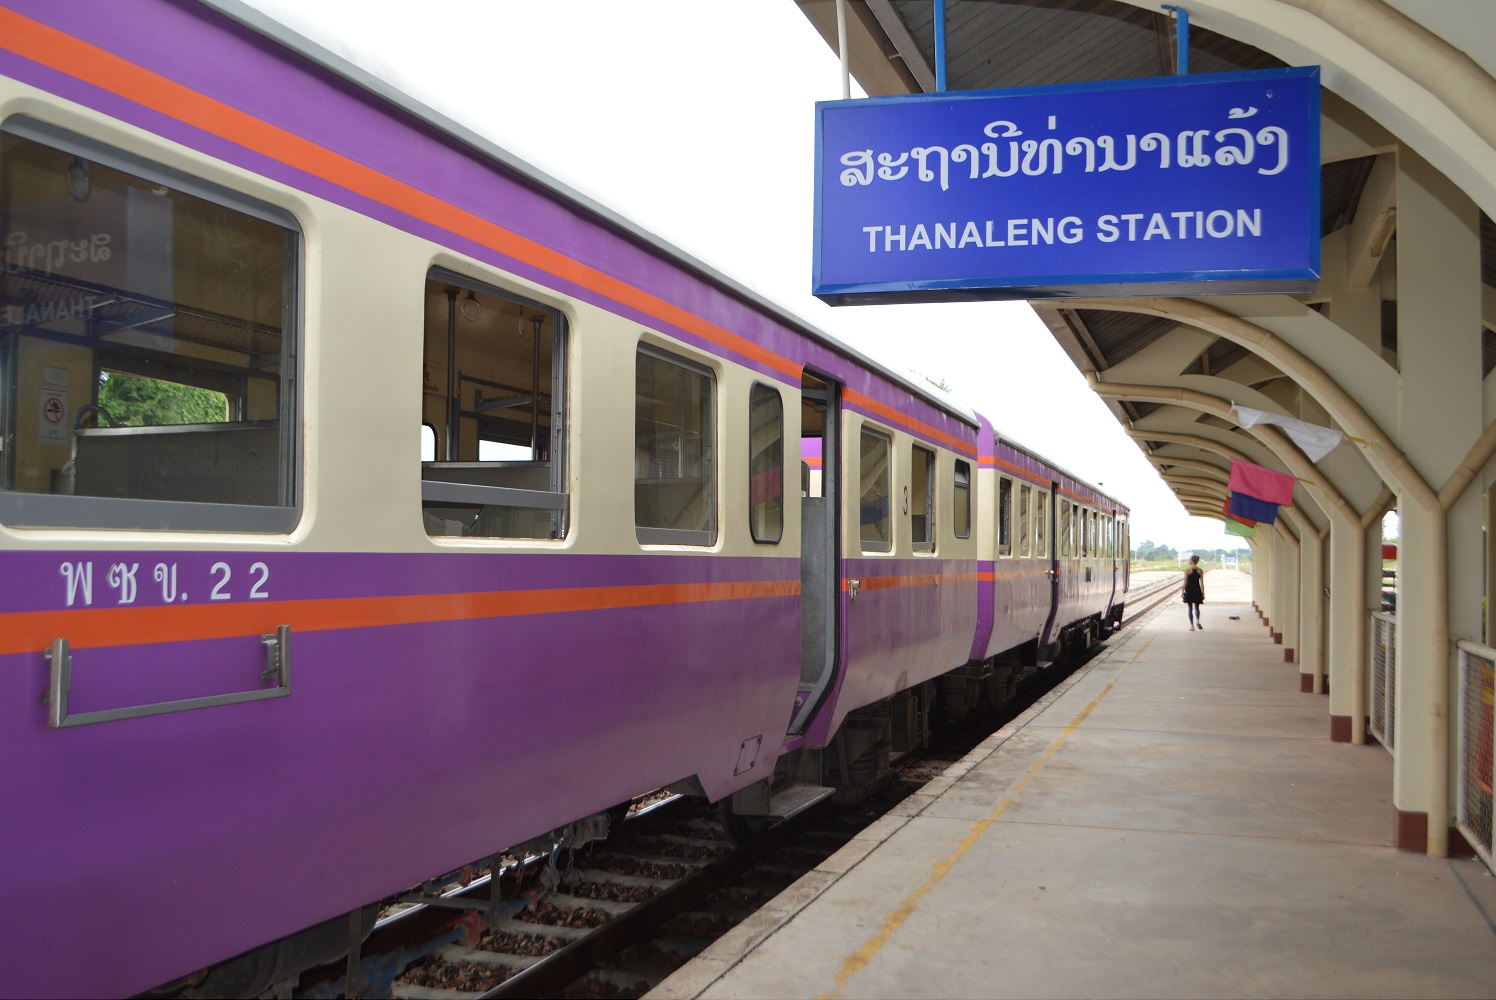 Travel to Laos by train